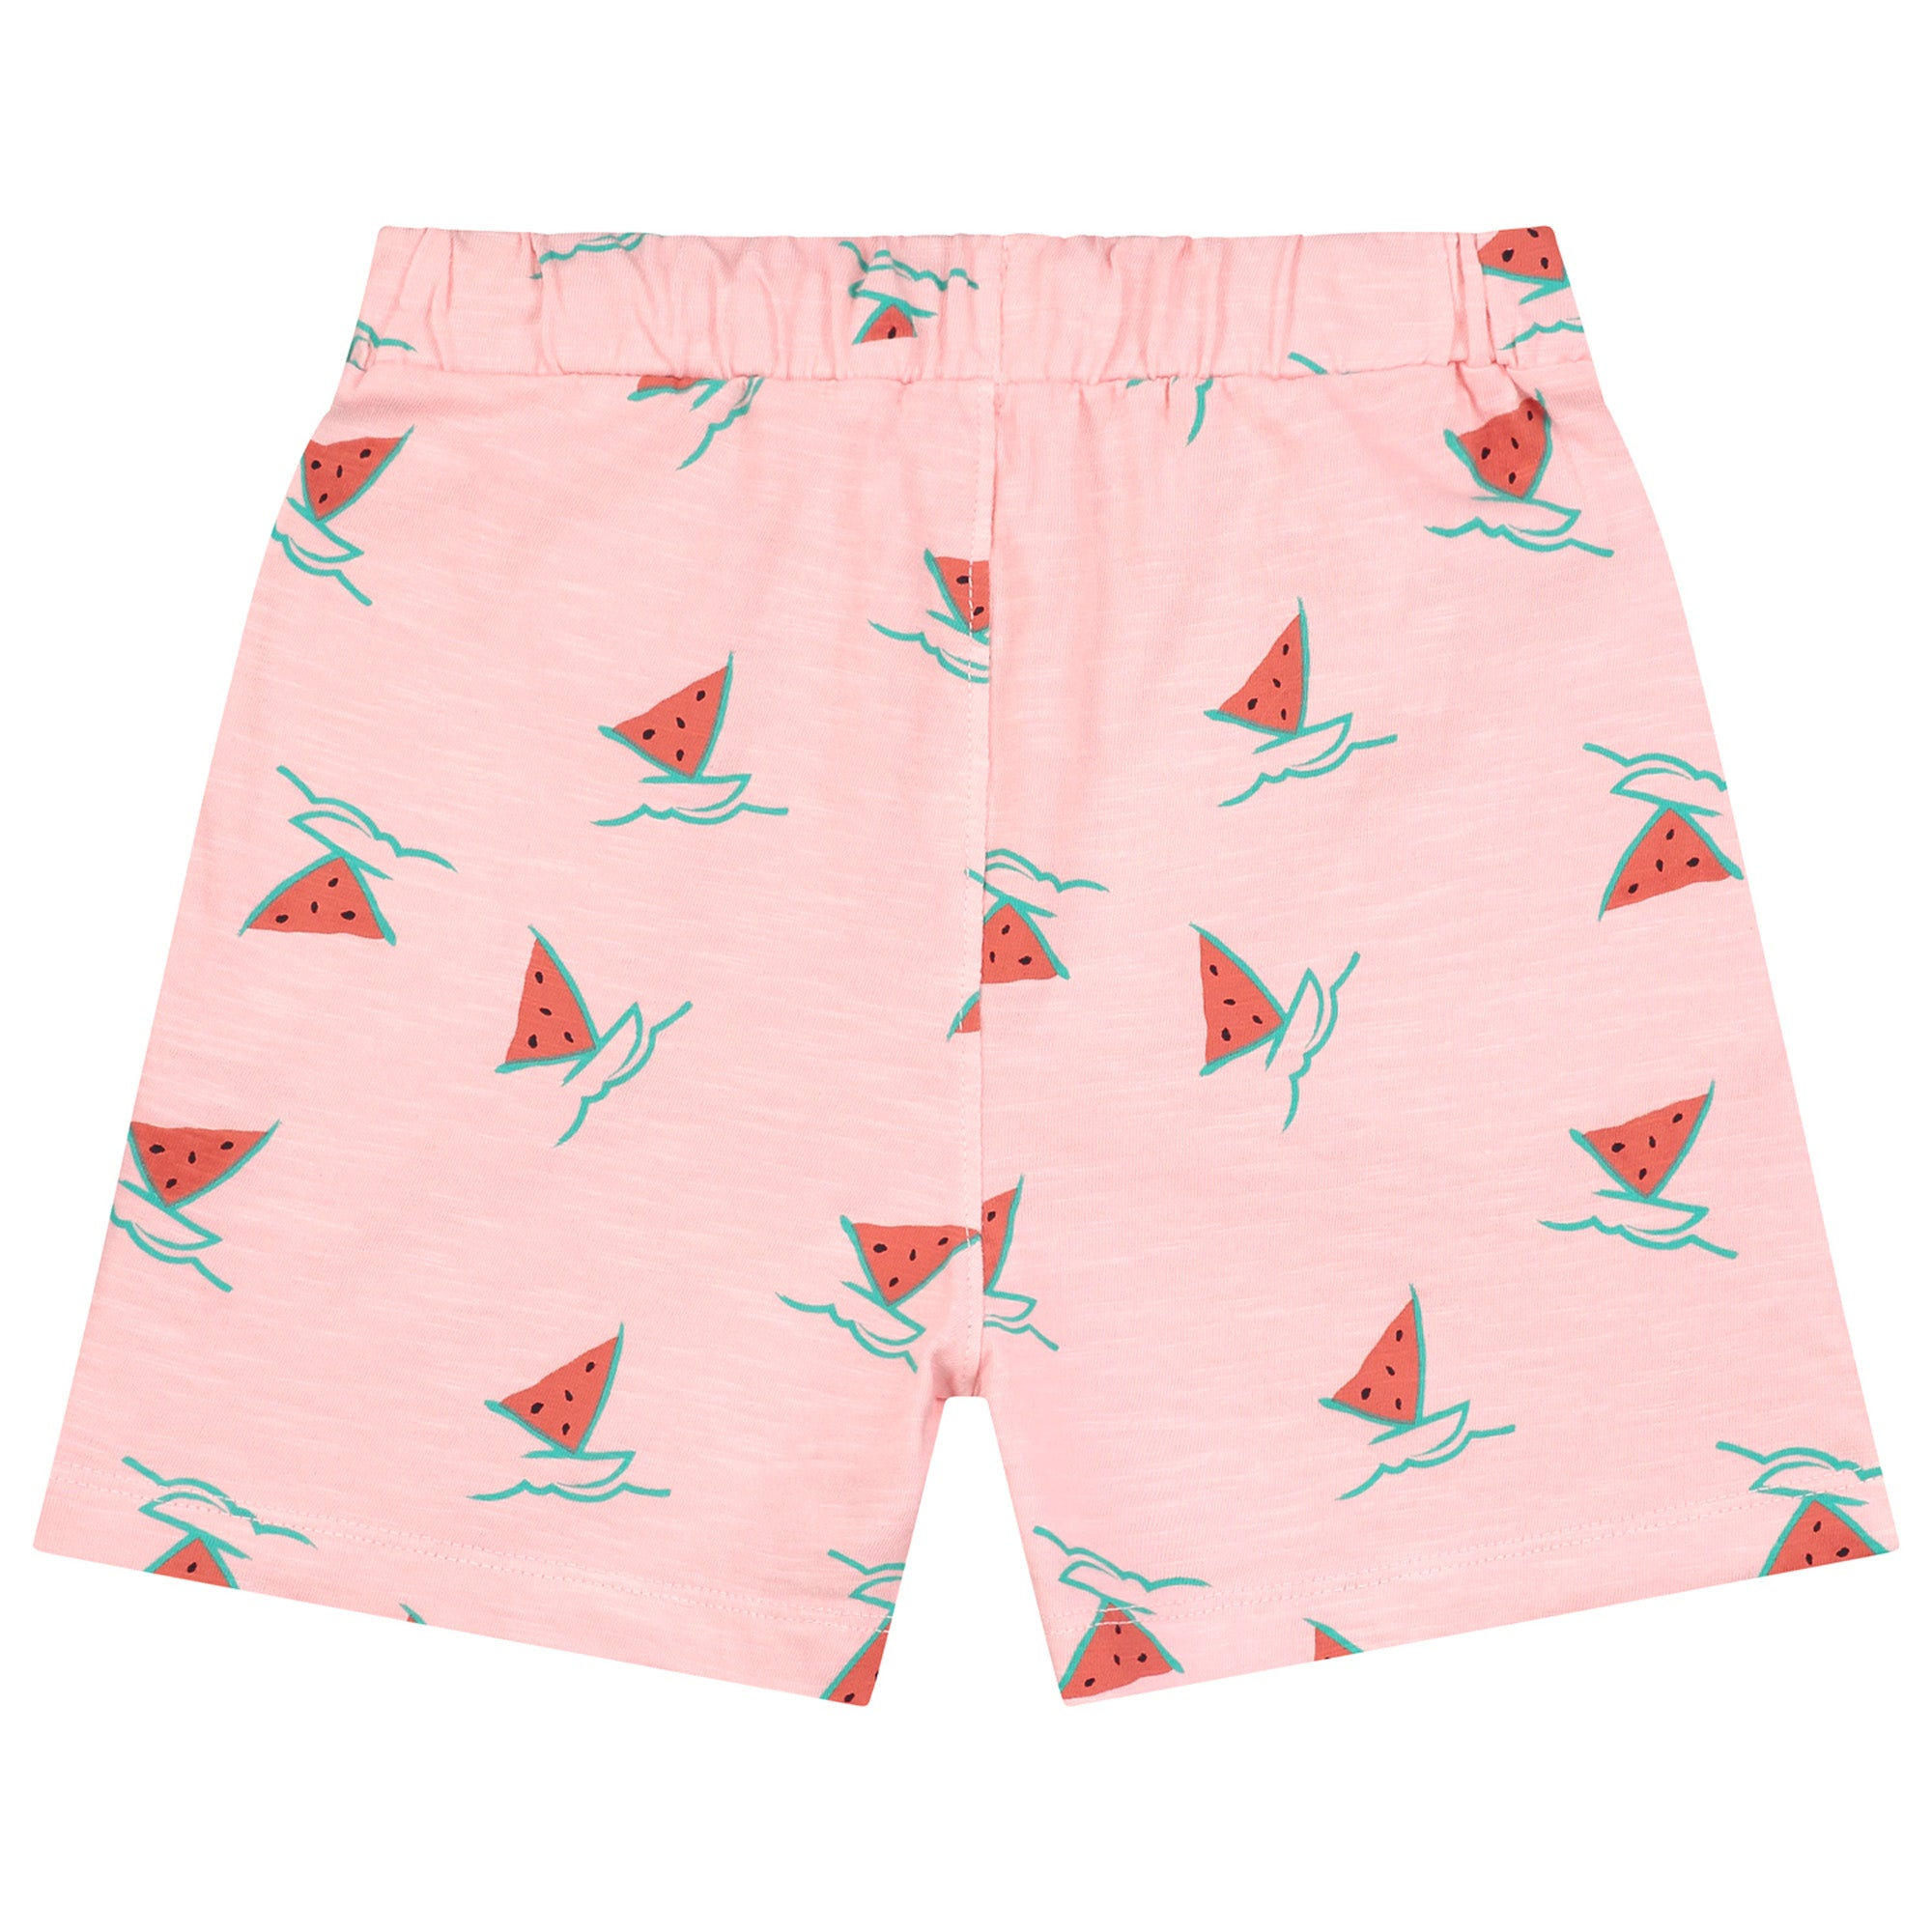 Watermelon Boat Girls Shorts